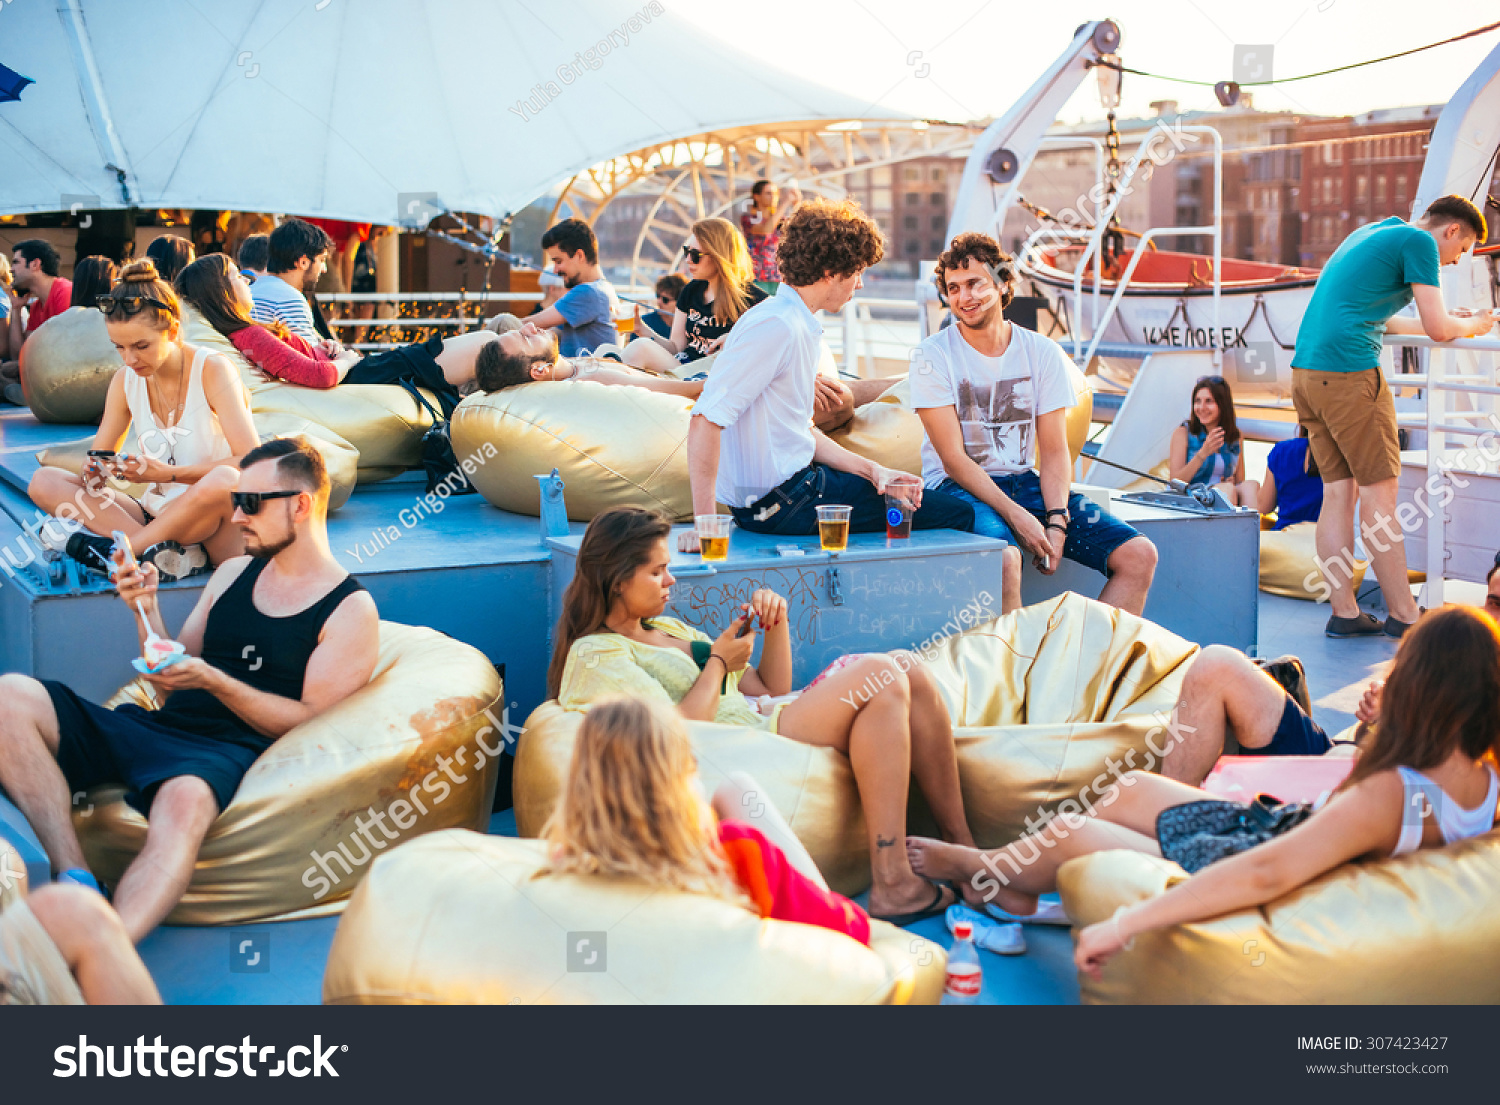 Have best cruise ships for young adults magnificent idea